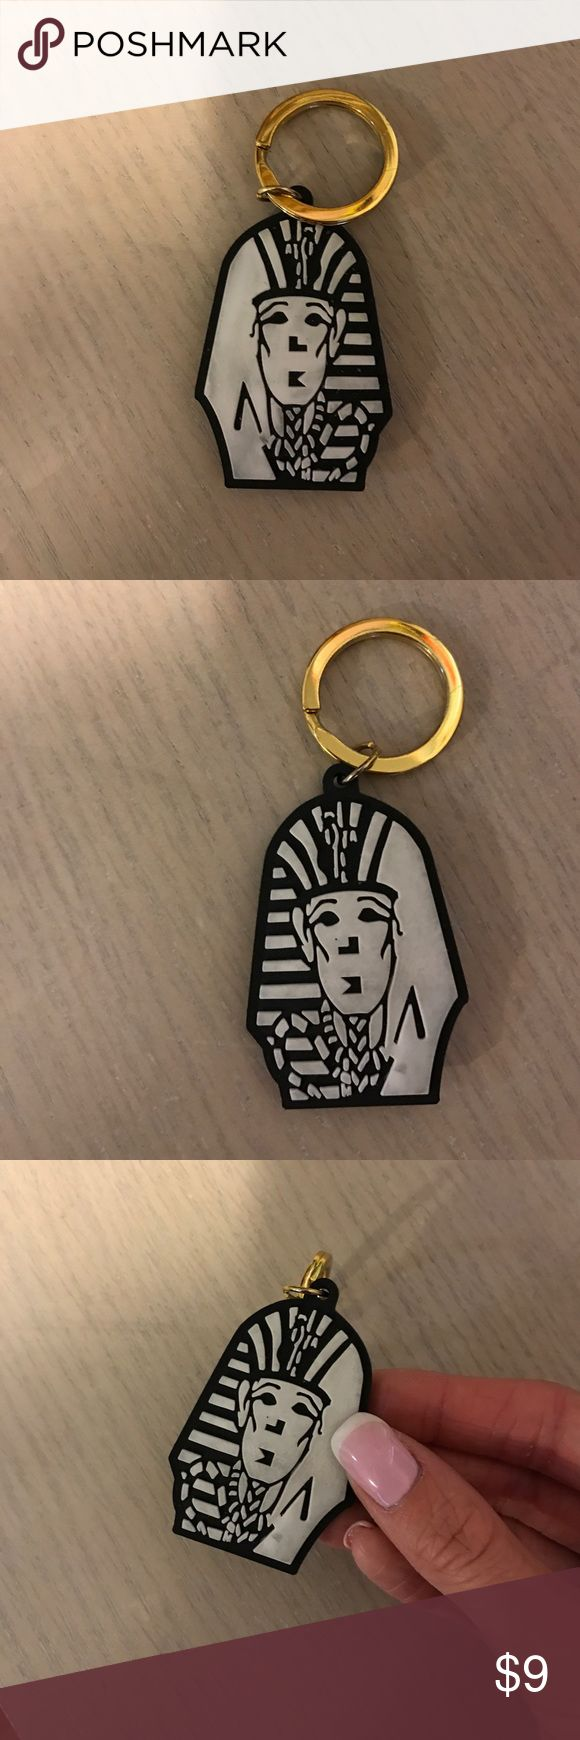 Tyga Last Kings keychain Perfect condition aside from some color transfer on the white. Thank you for looking!  I ship within 2 days shipping excluding holidays I do not trade! I only accept offers through the offer button! Thank you for shopping and feel free to ask any questions! last kings Accessories Key & Card Holders